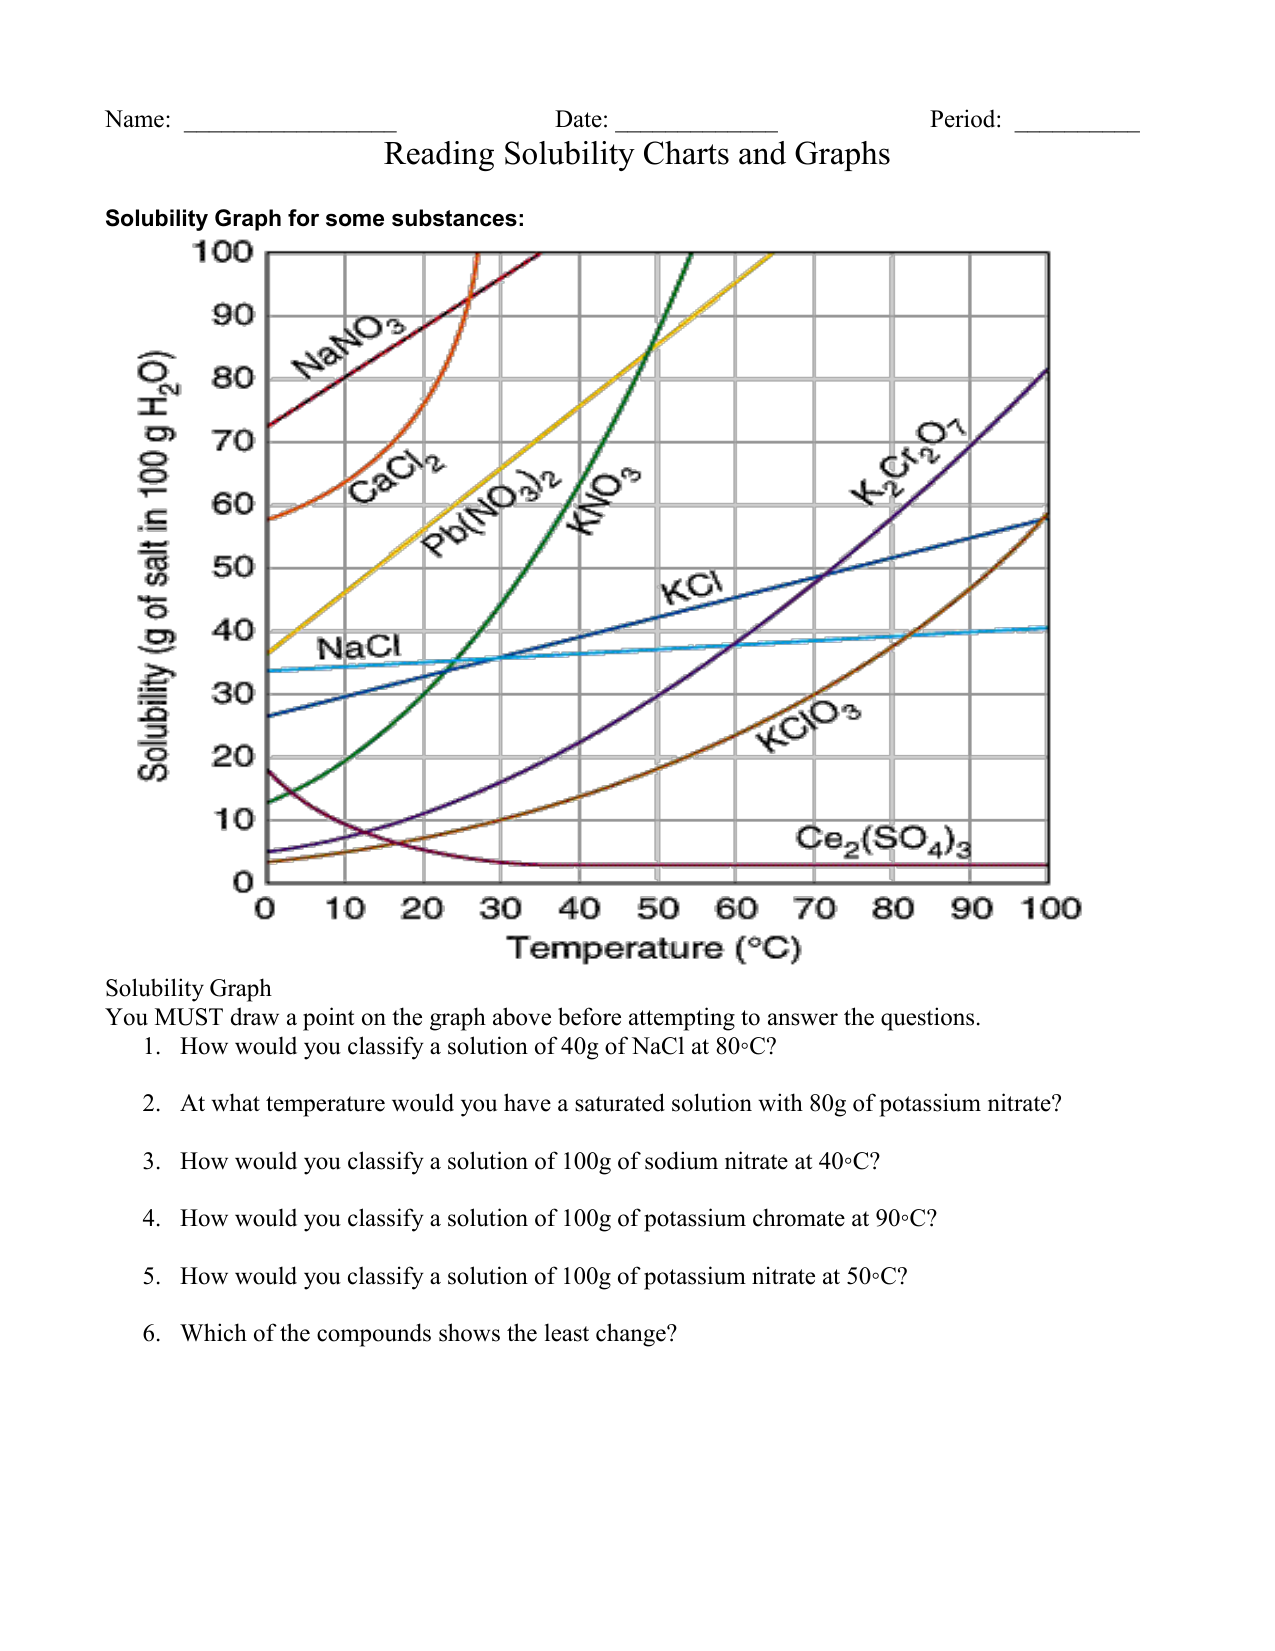 Reading Solubility Charts And Graphs